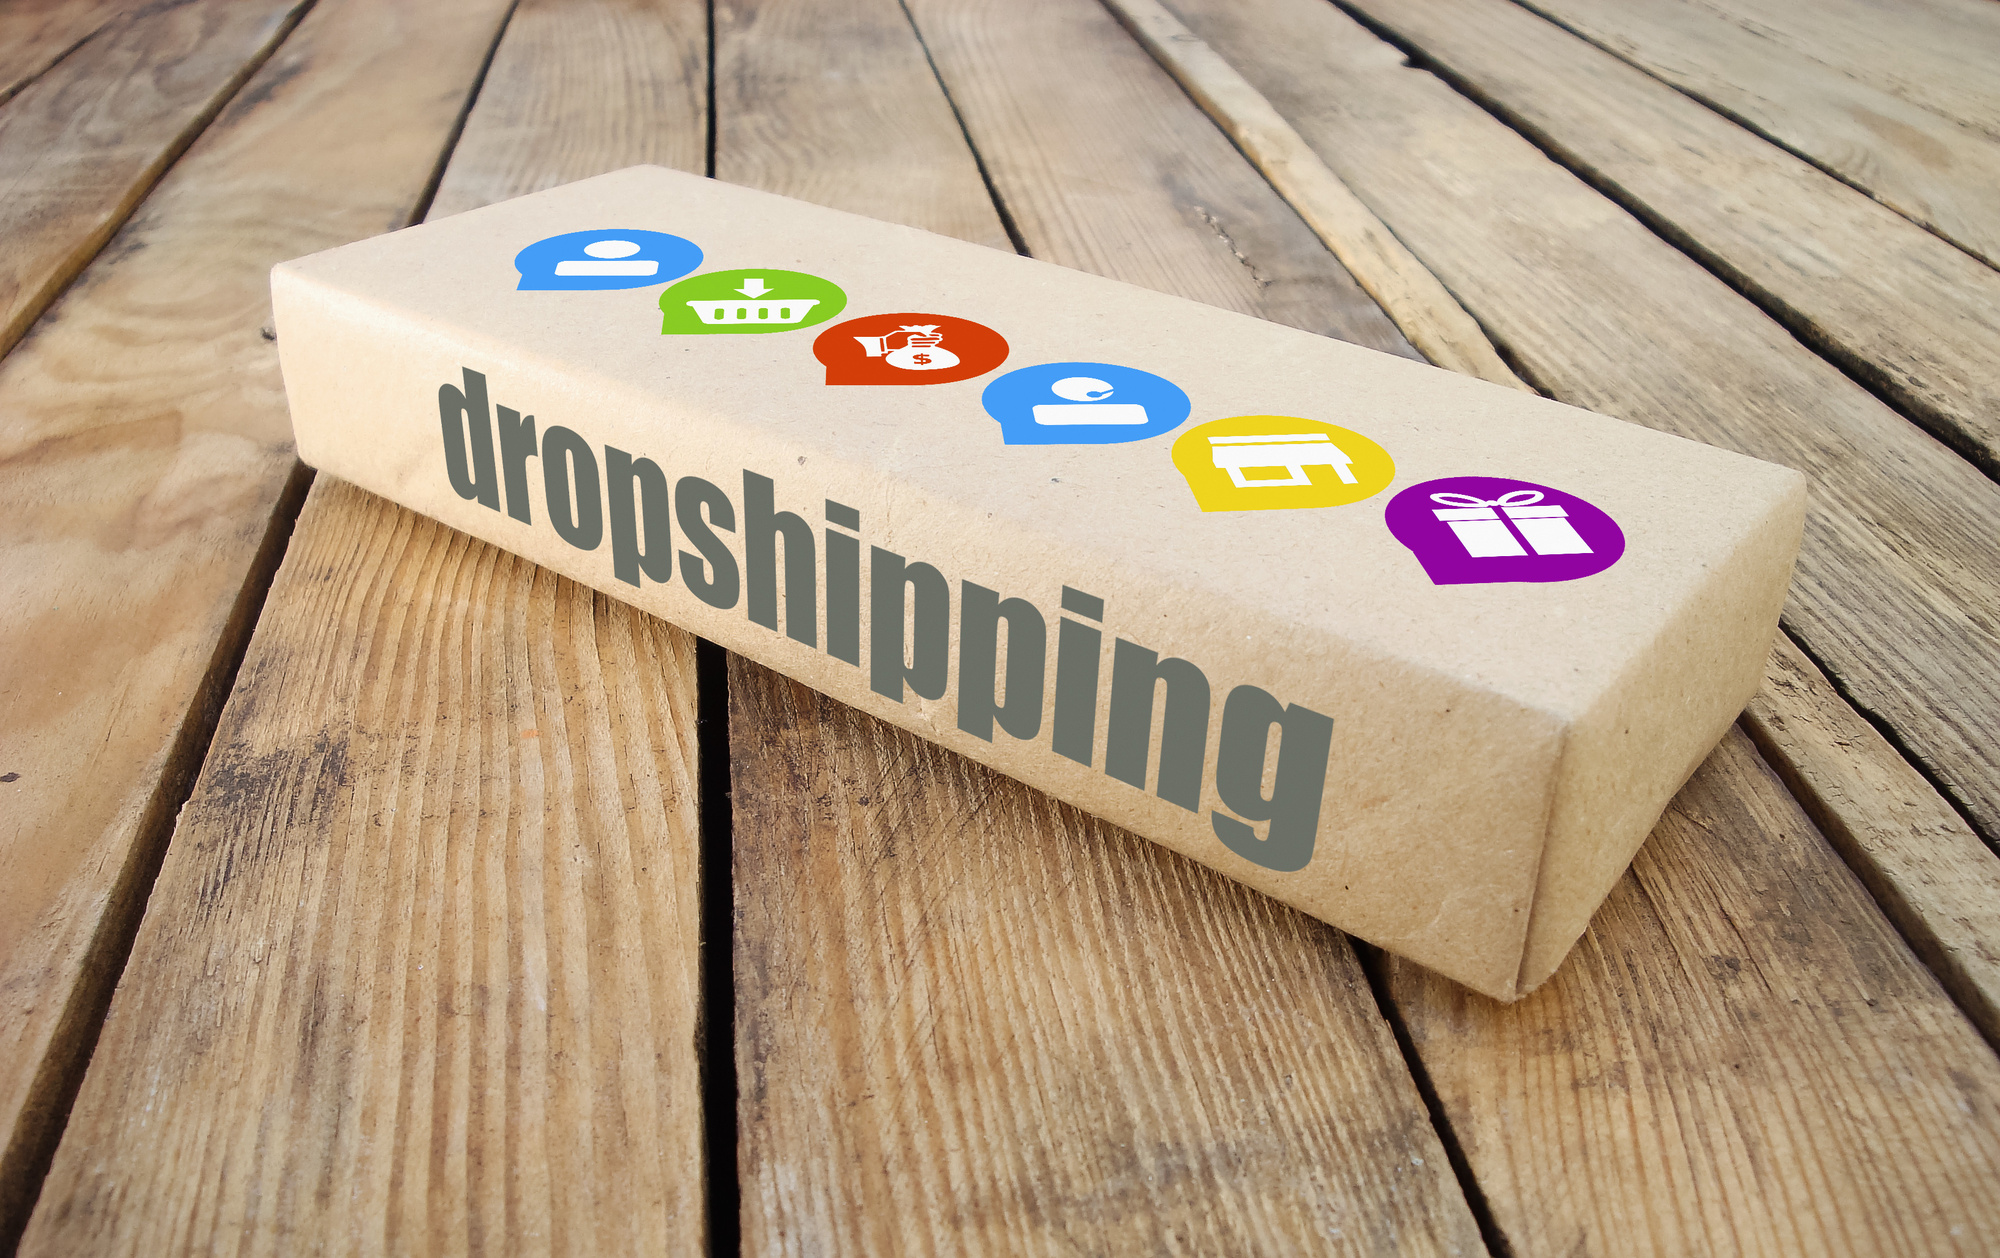 Best Free Shopify Apps for a Dropshipping Business